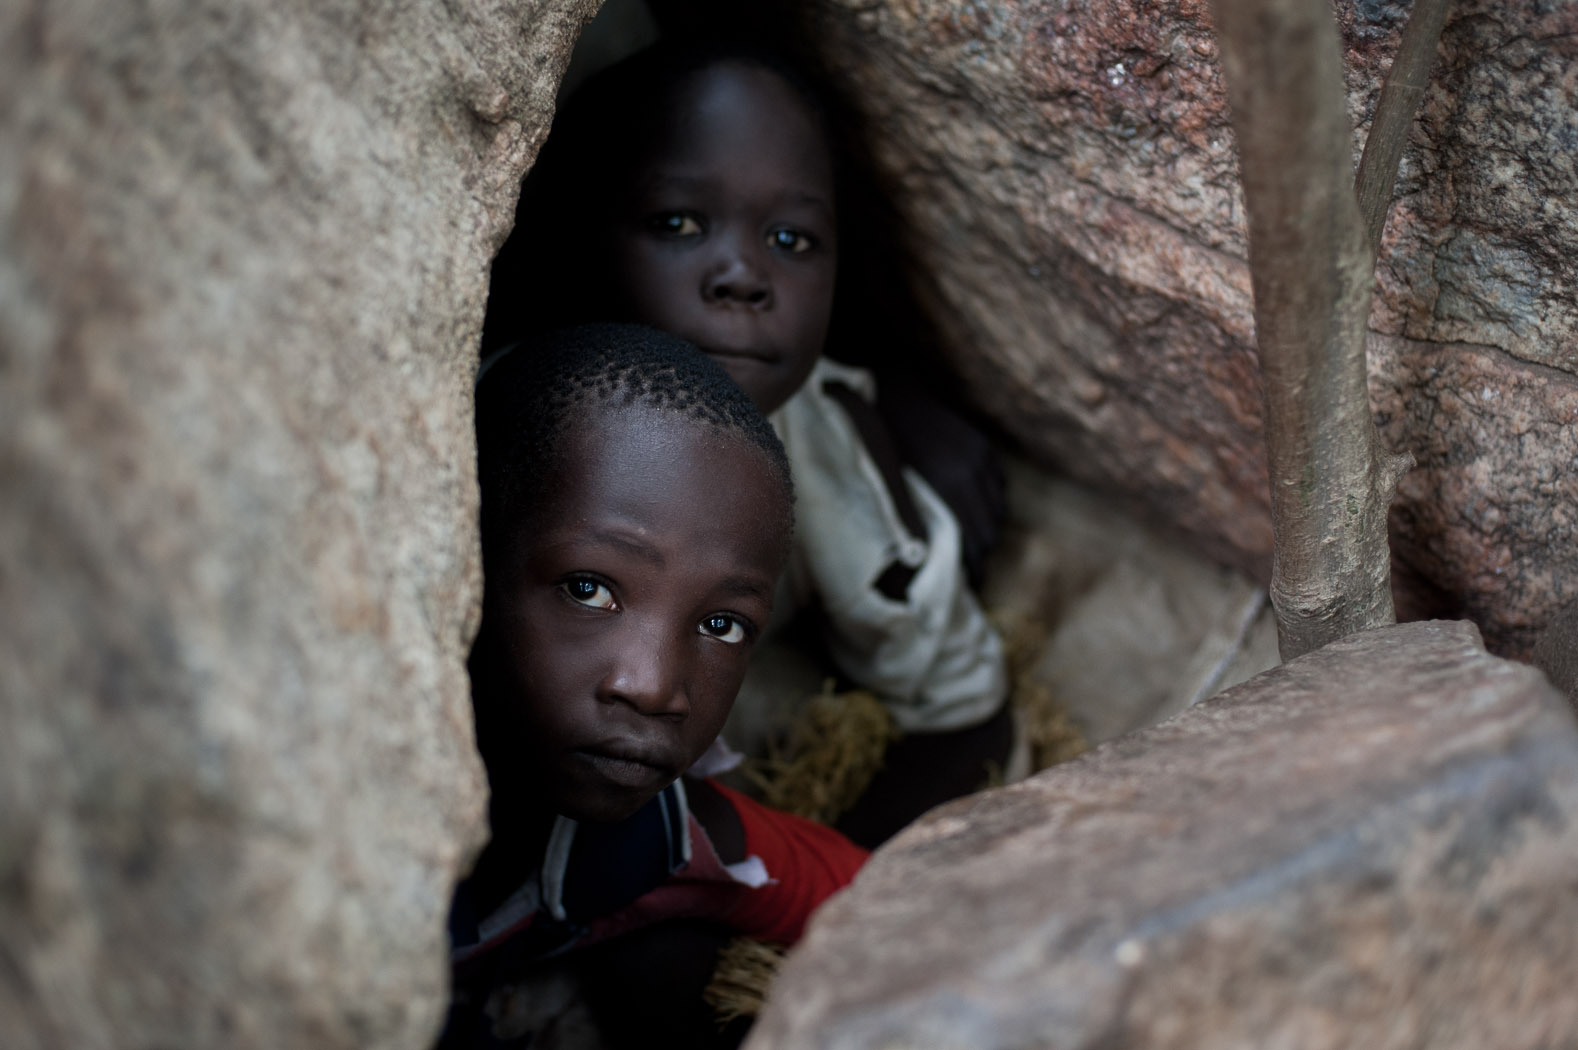 """A group of children peer from a cave in a dried river bed as they take shelter from aerial bombardments. As well of the threat of the aircraft, they also fear snakes and other animals living in the caves. """"We saw a snake go in once, but when a plane flew we had to take cover"""" said one child. """"We never saw the snake come out again."""""""